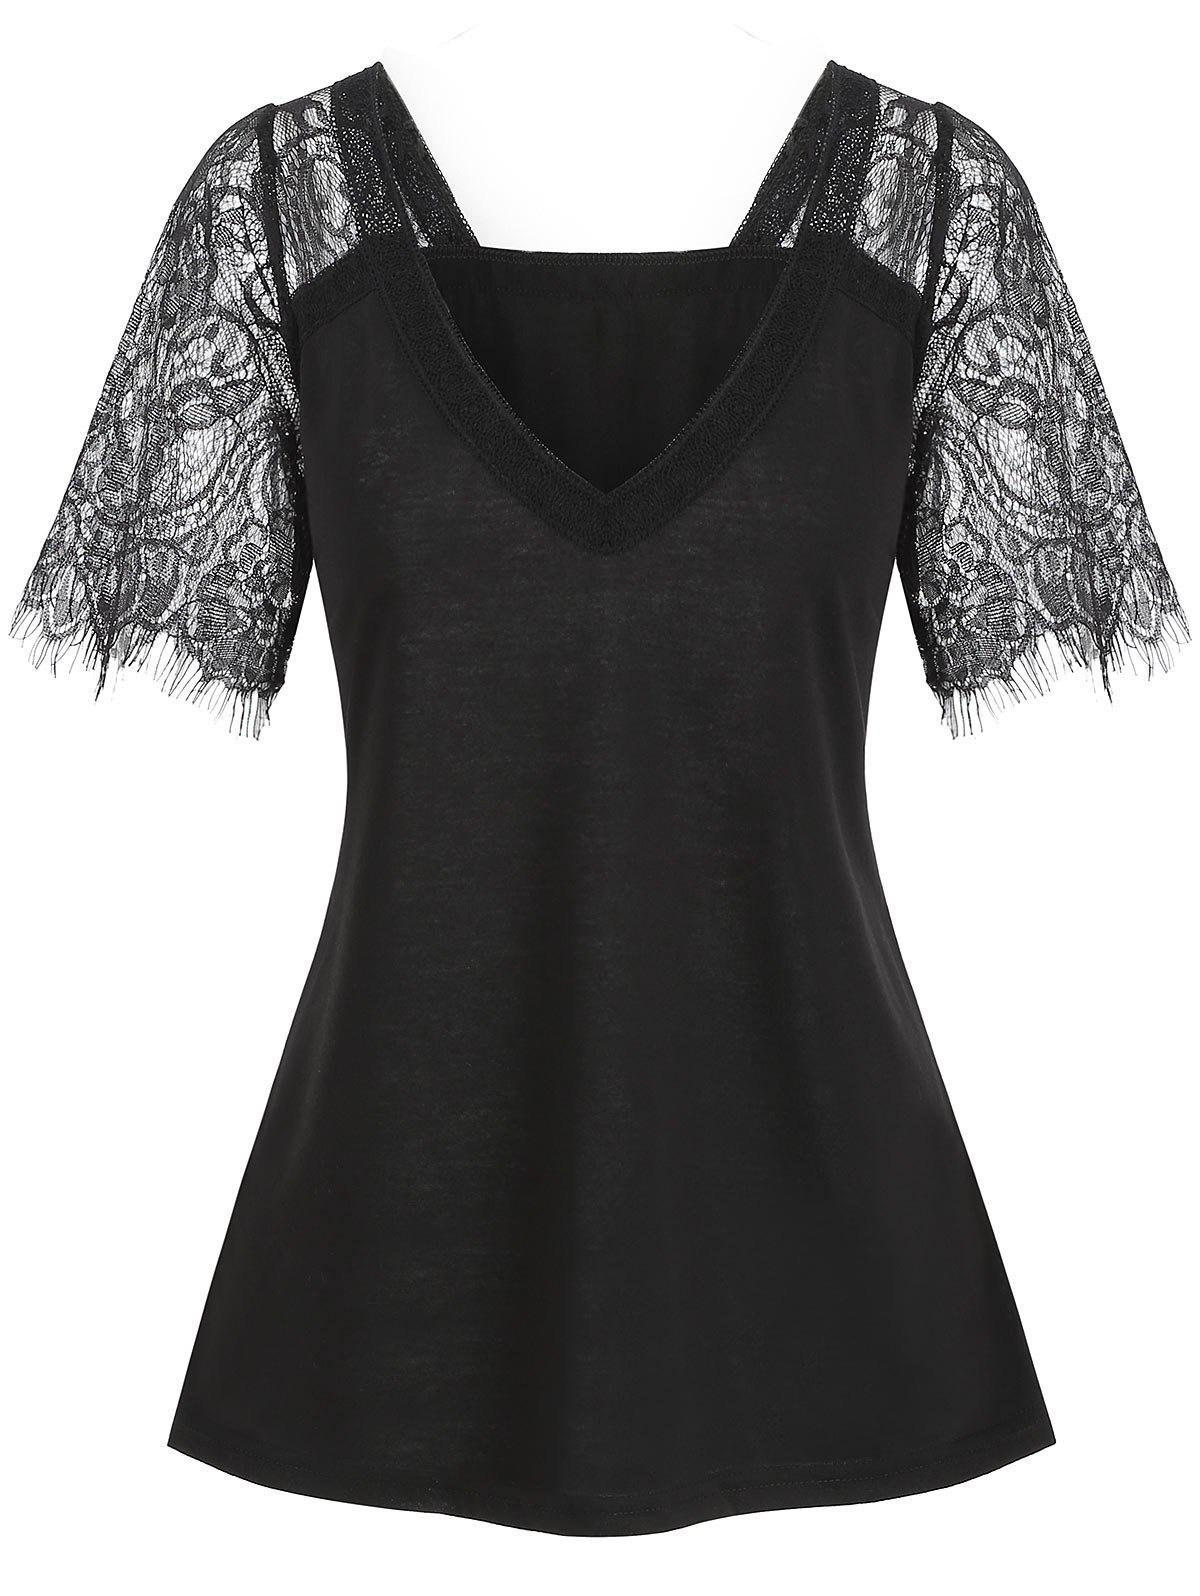 New Plunging Lace Sleeve See Thru Tee